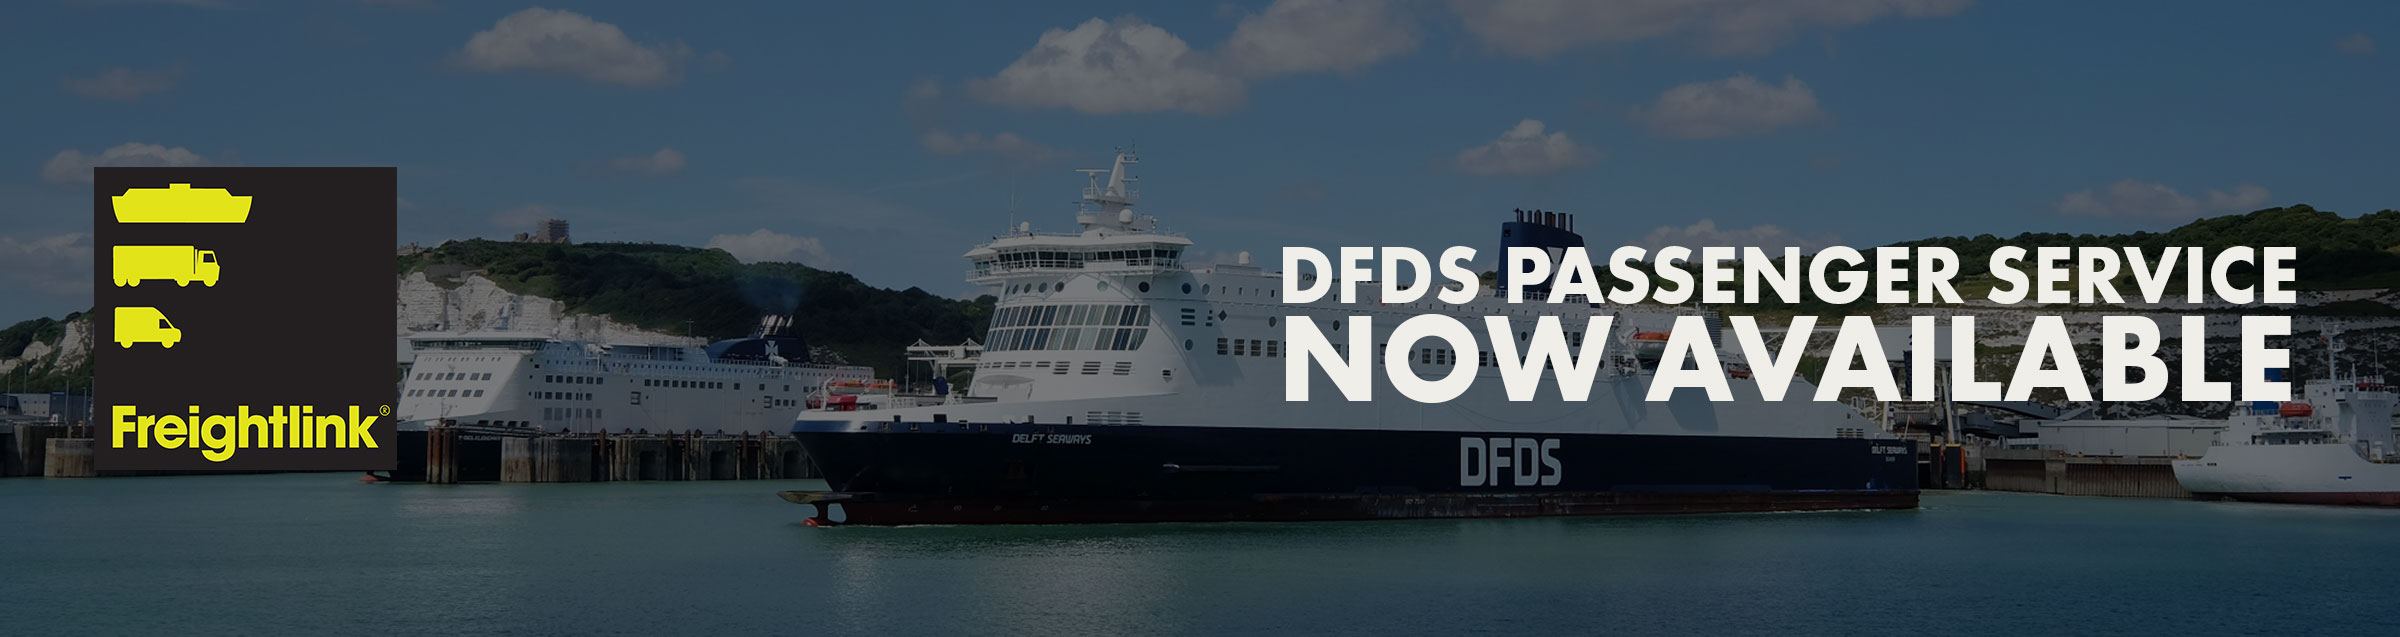 DFDS Passenger Service Now Available